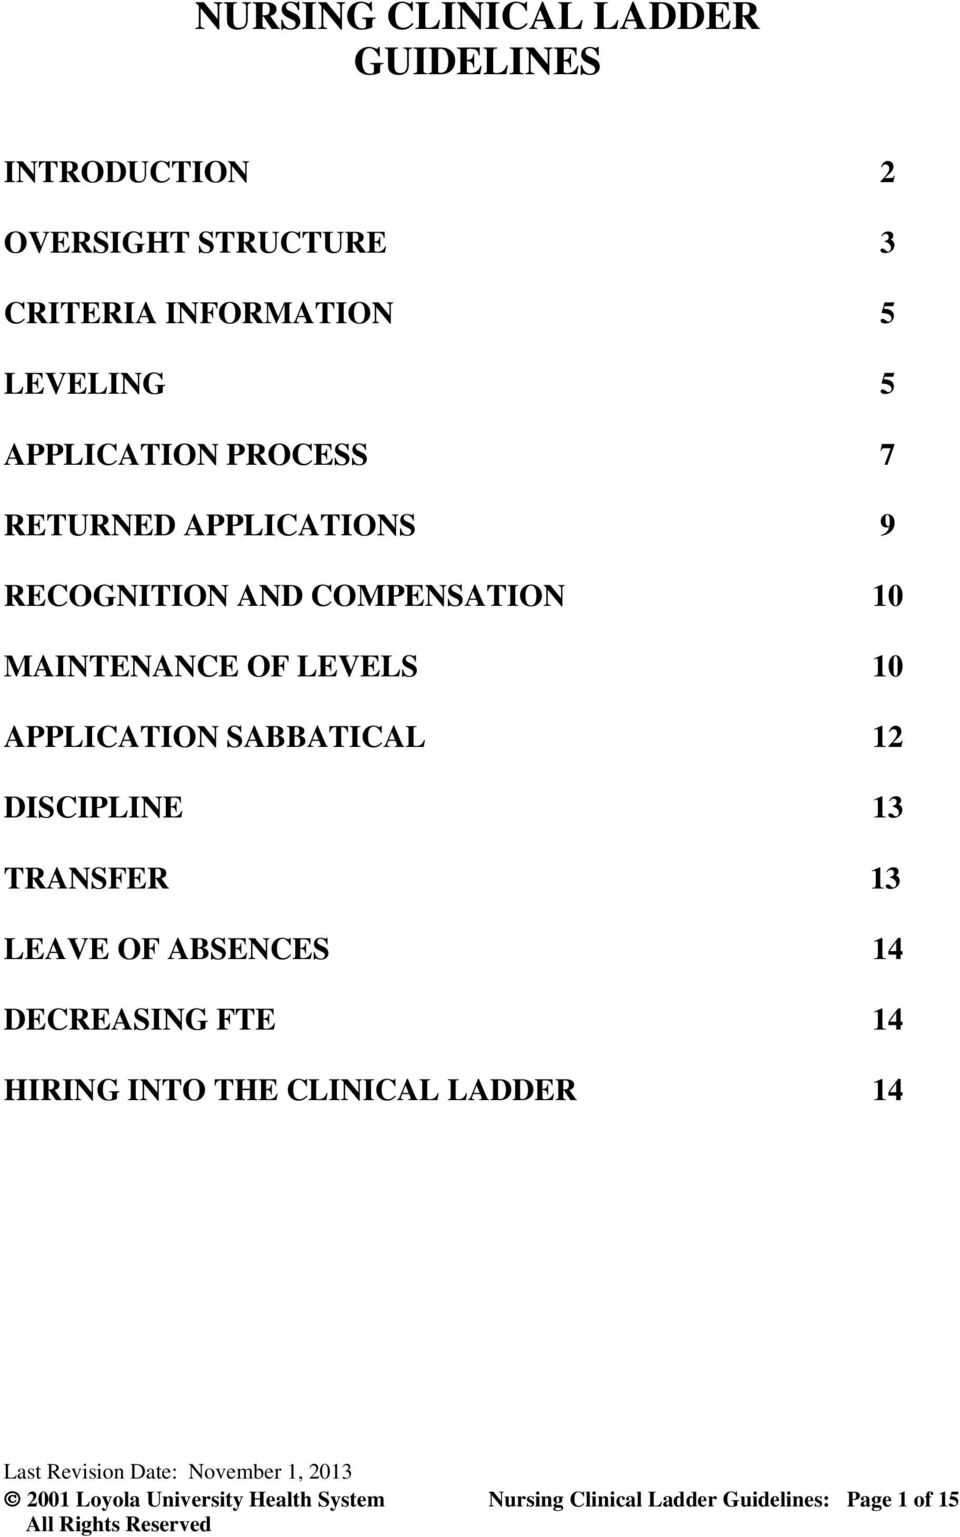 APPLICATION SABBATICAL 12 DISCIPLINE 13 TRANSFER 13 LEAVE OF ABSENCES 14 DECREASING FTE 14 HIRING INTO